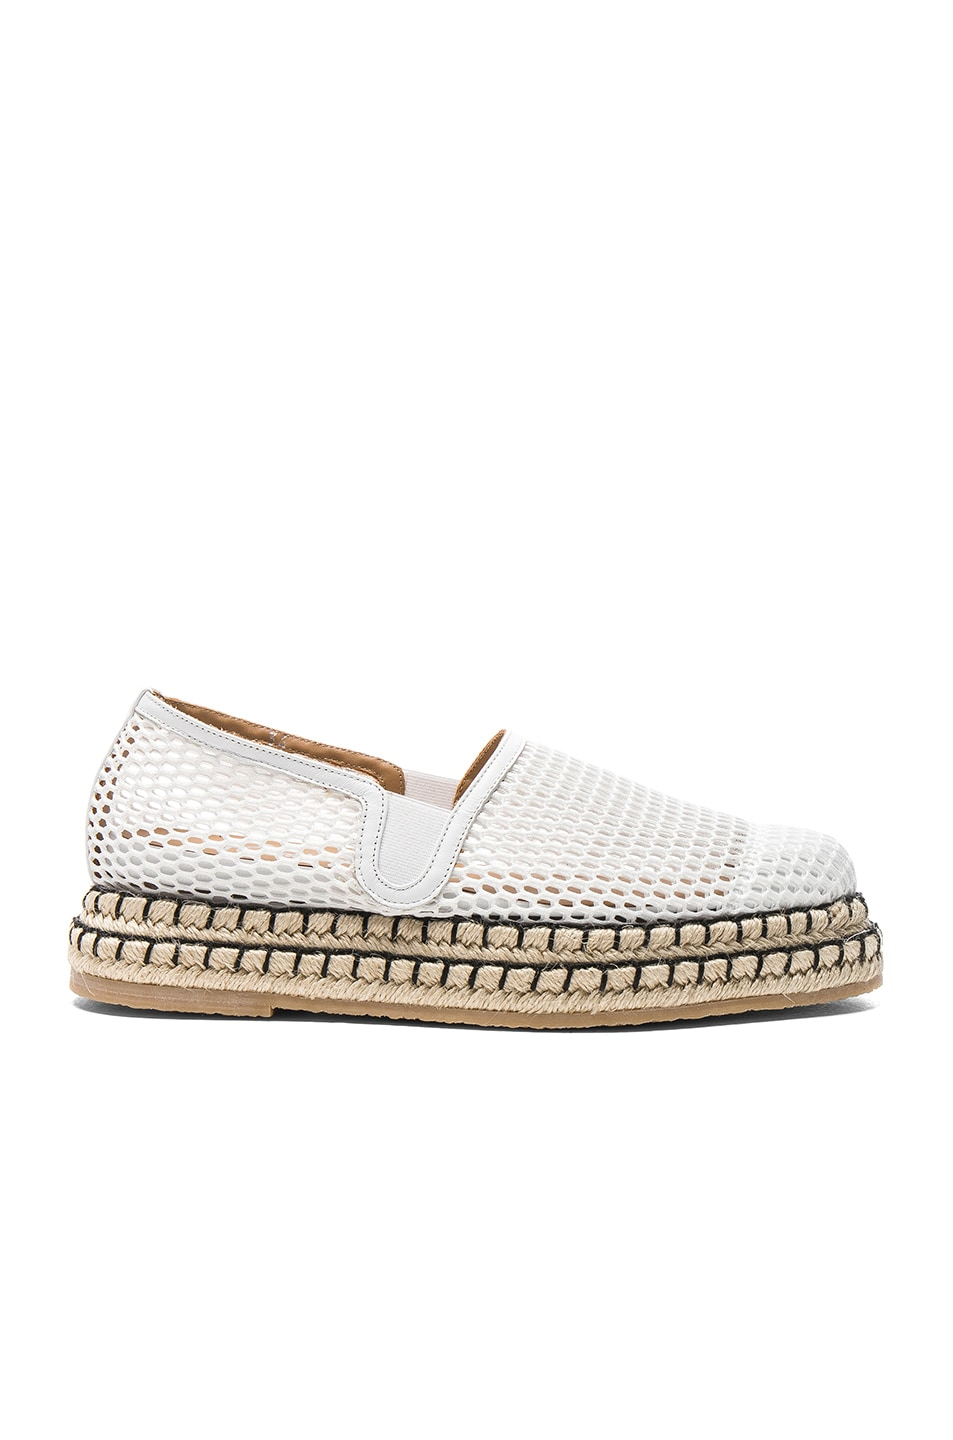 Image 1 of Flamingos Mesh Limbo Espadrilles in White Mesh